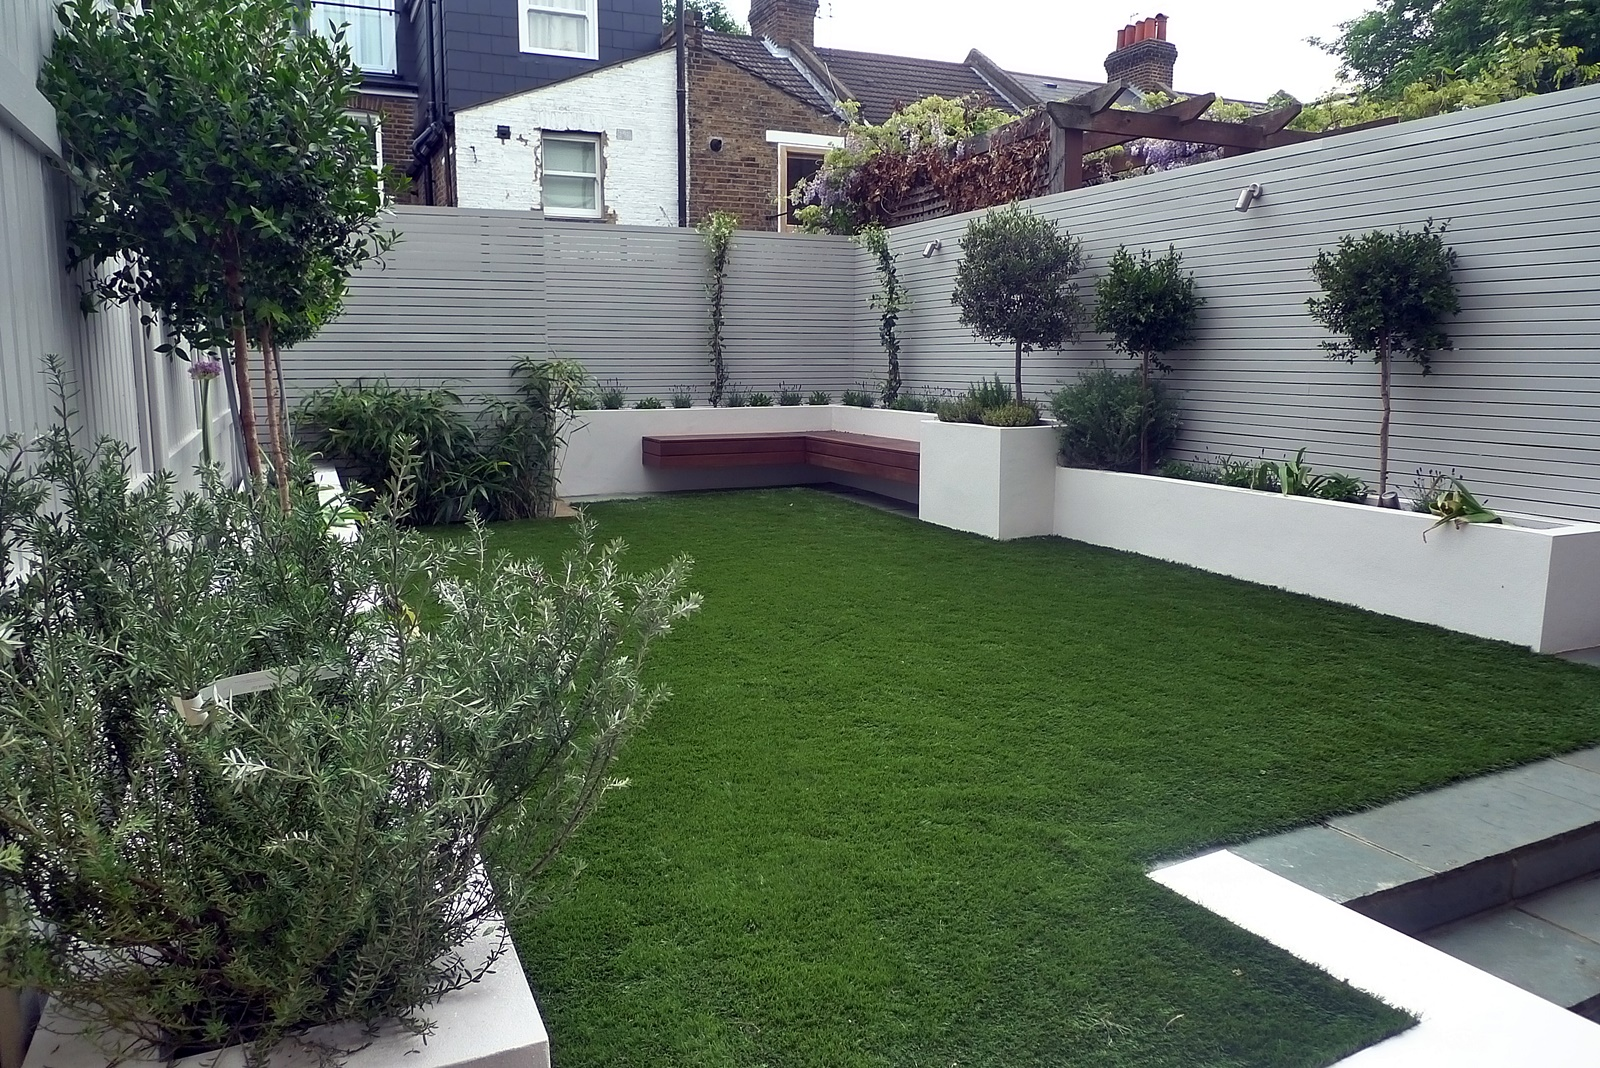 London garden blog london garden blog gardens from for Contemporary garden designs and ideas